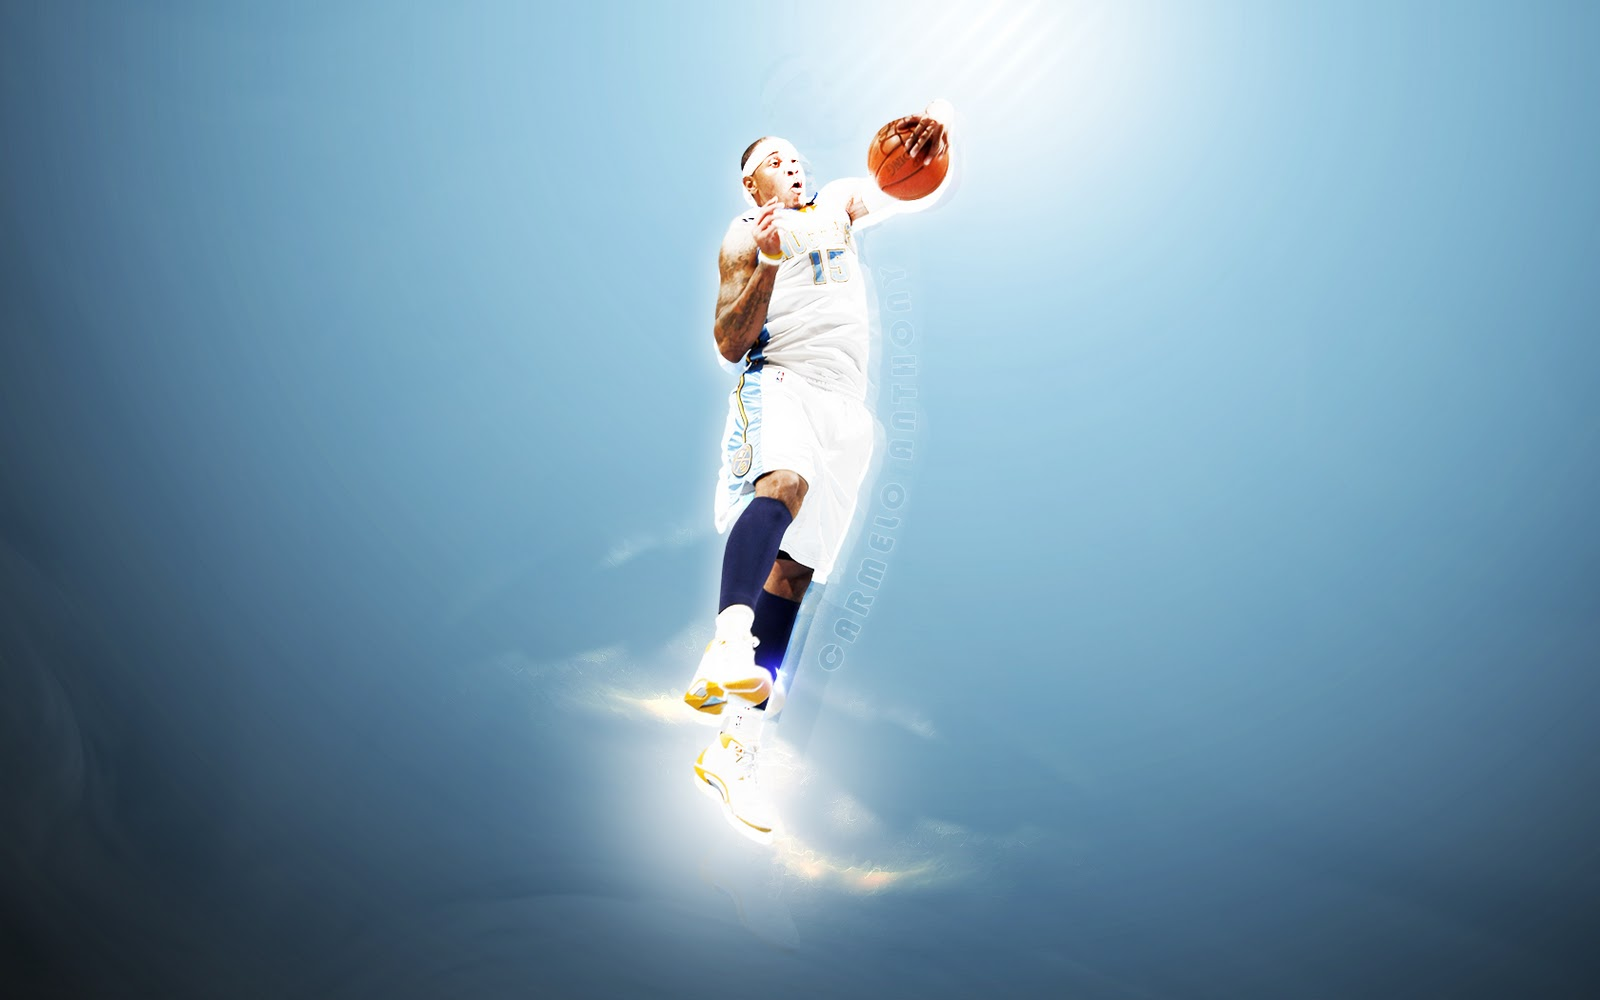 Sport Wallpaper Basketball